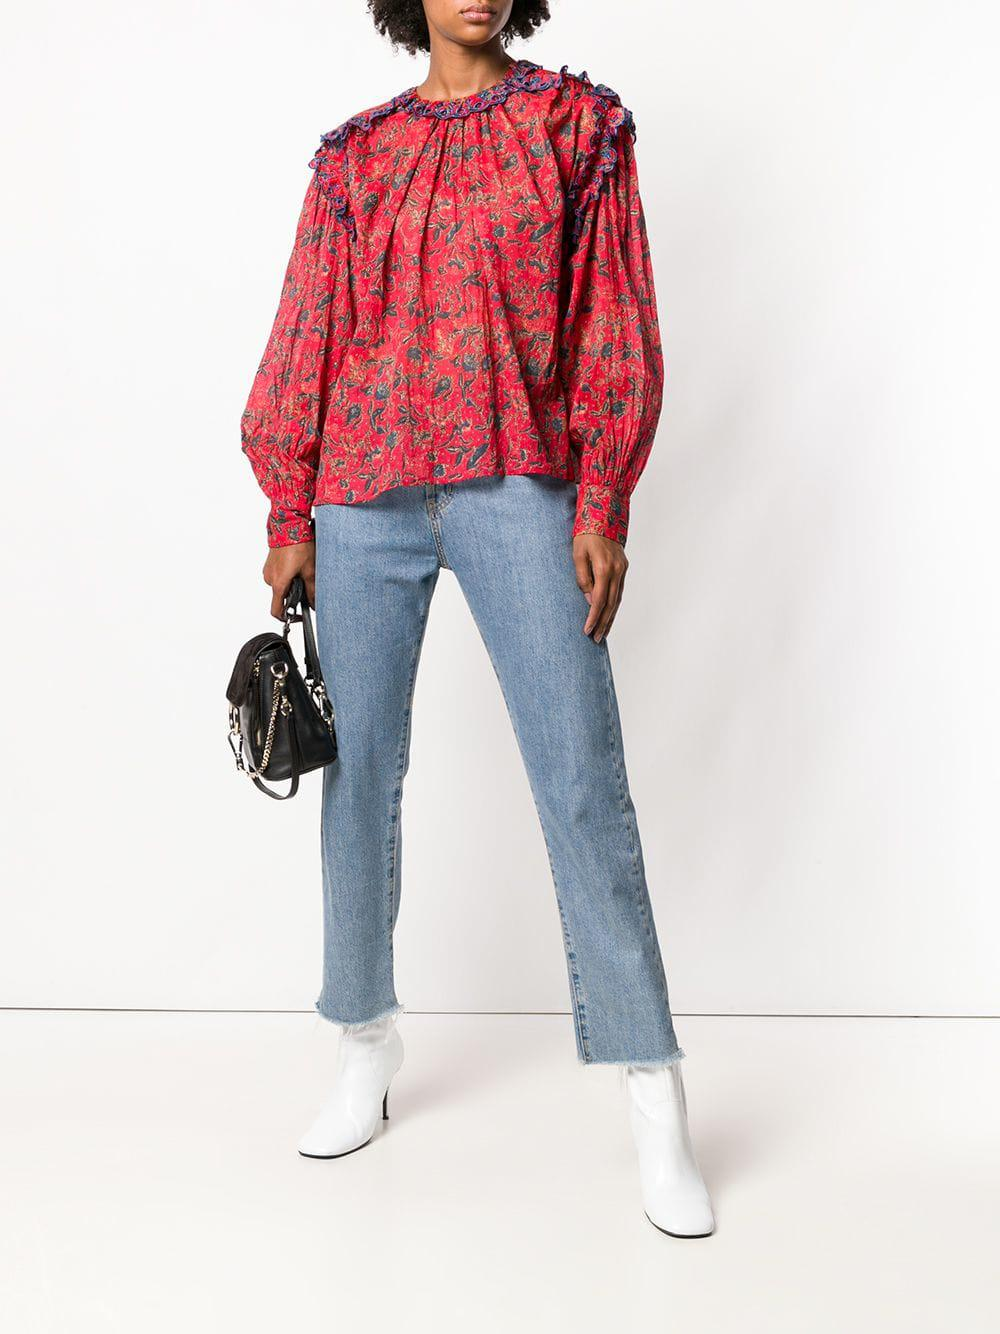 b35a1711258a2 Étoile Isabel Marant Floral Printed Blouse in Red - Save 50% - Lyst